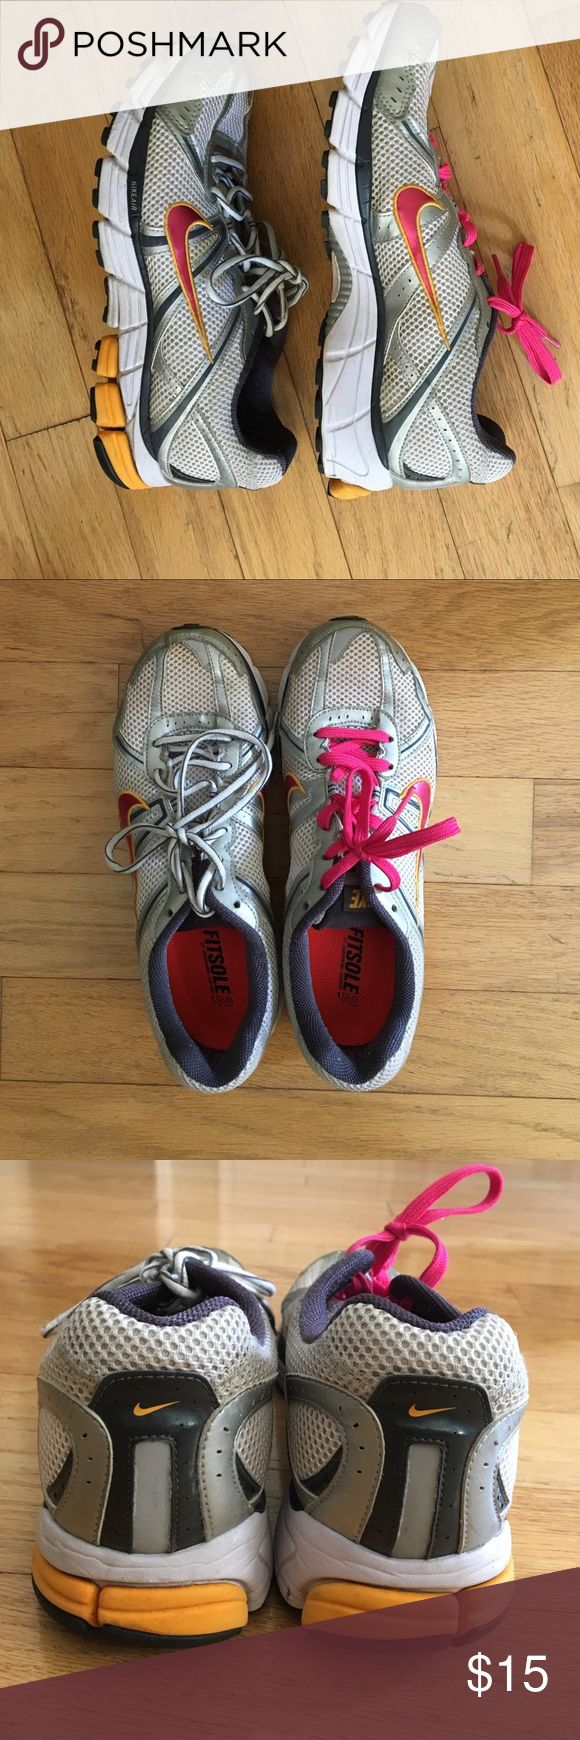 NIKE air Pegasus running shoes gently worn NIKE air Pegasus women's running shoes. One lace is pink for breast cancer. Nike Shoes Athletic Shoes